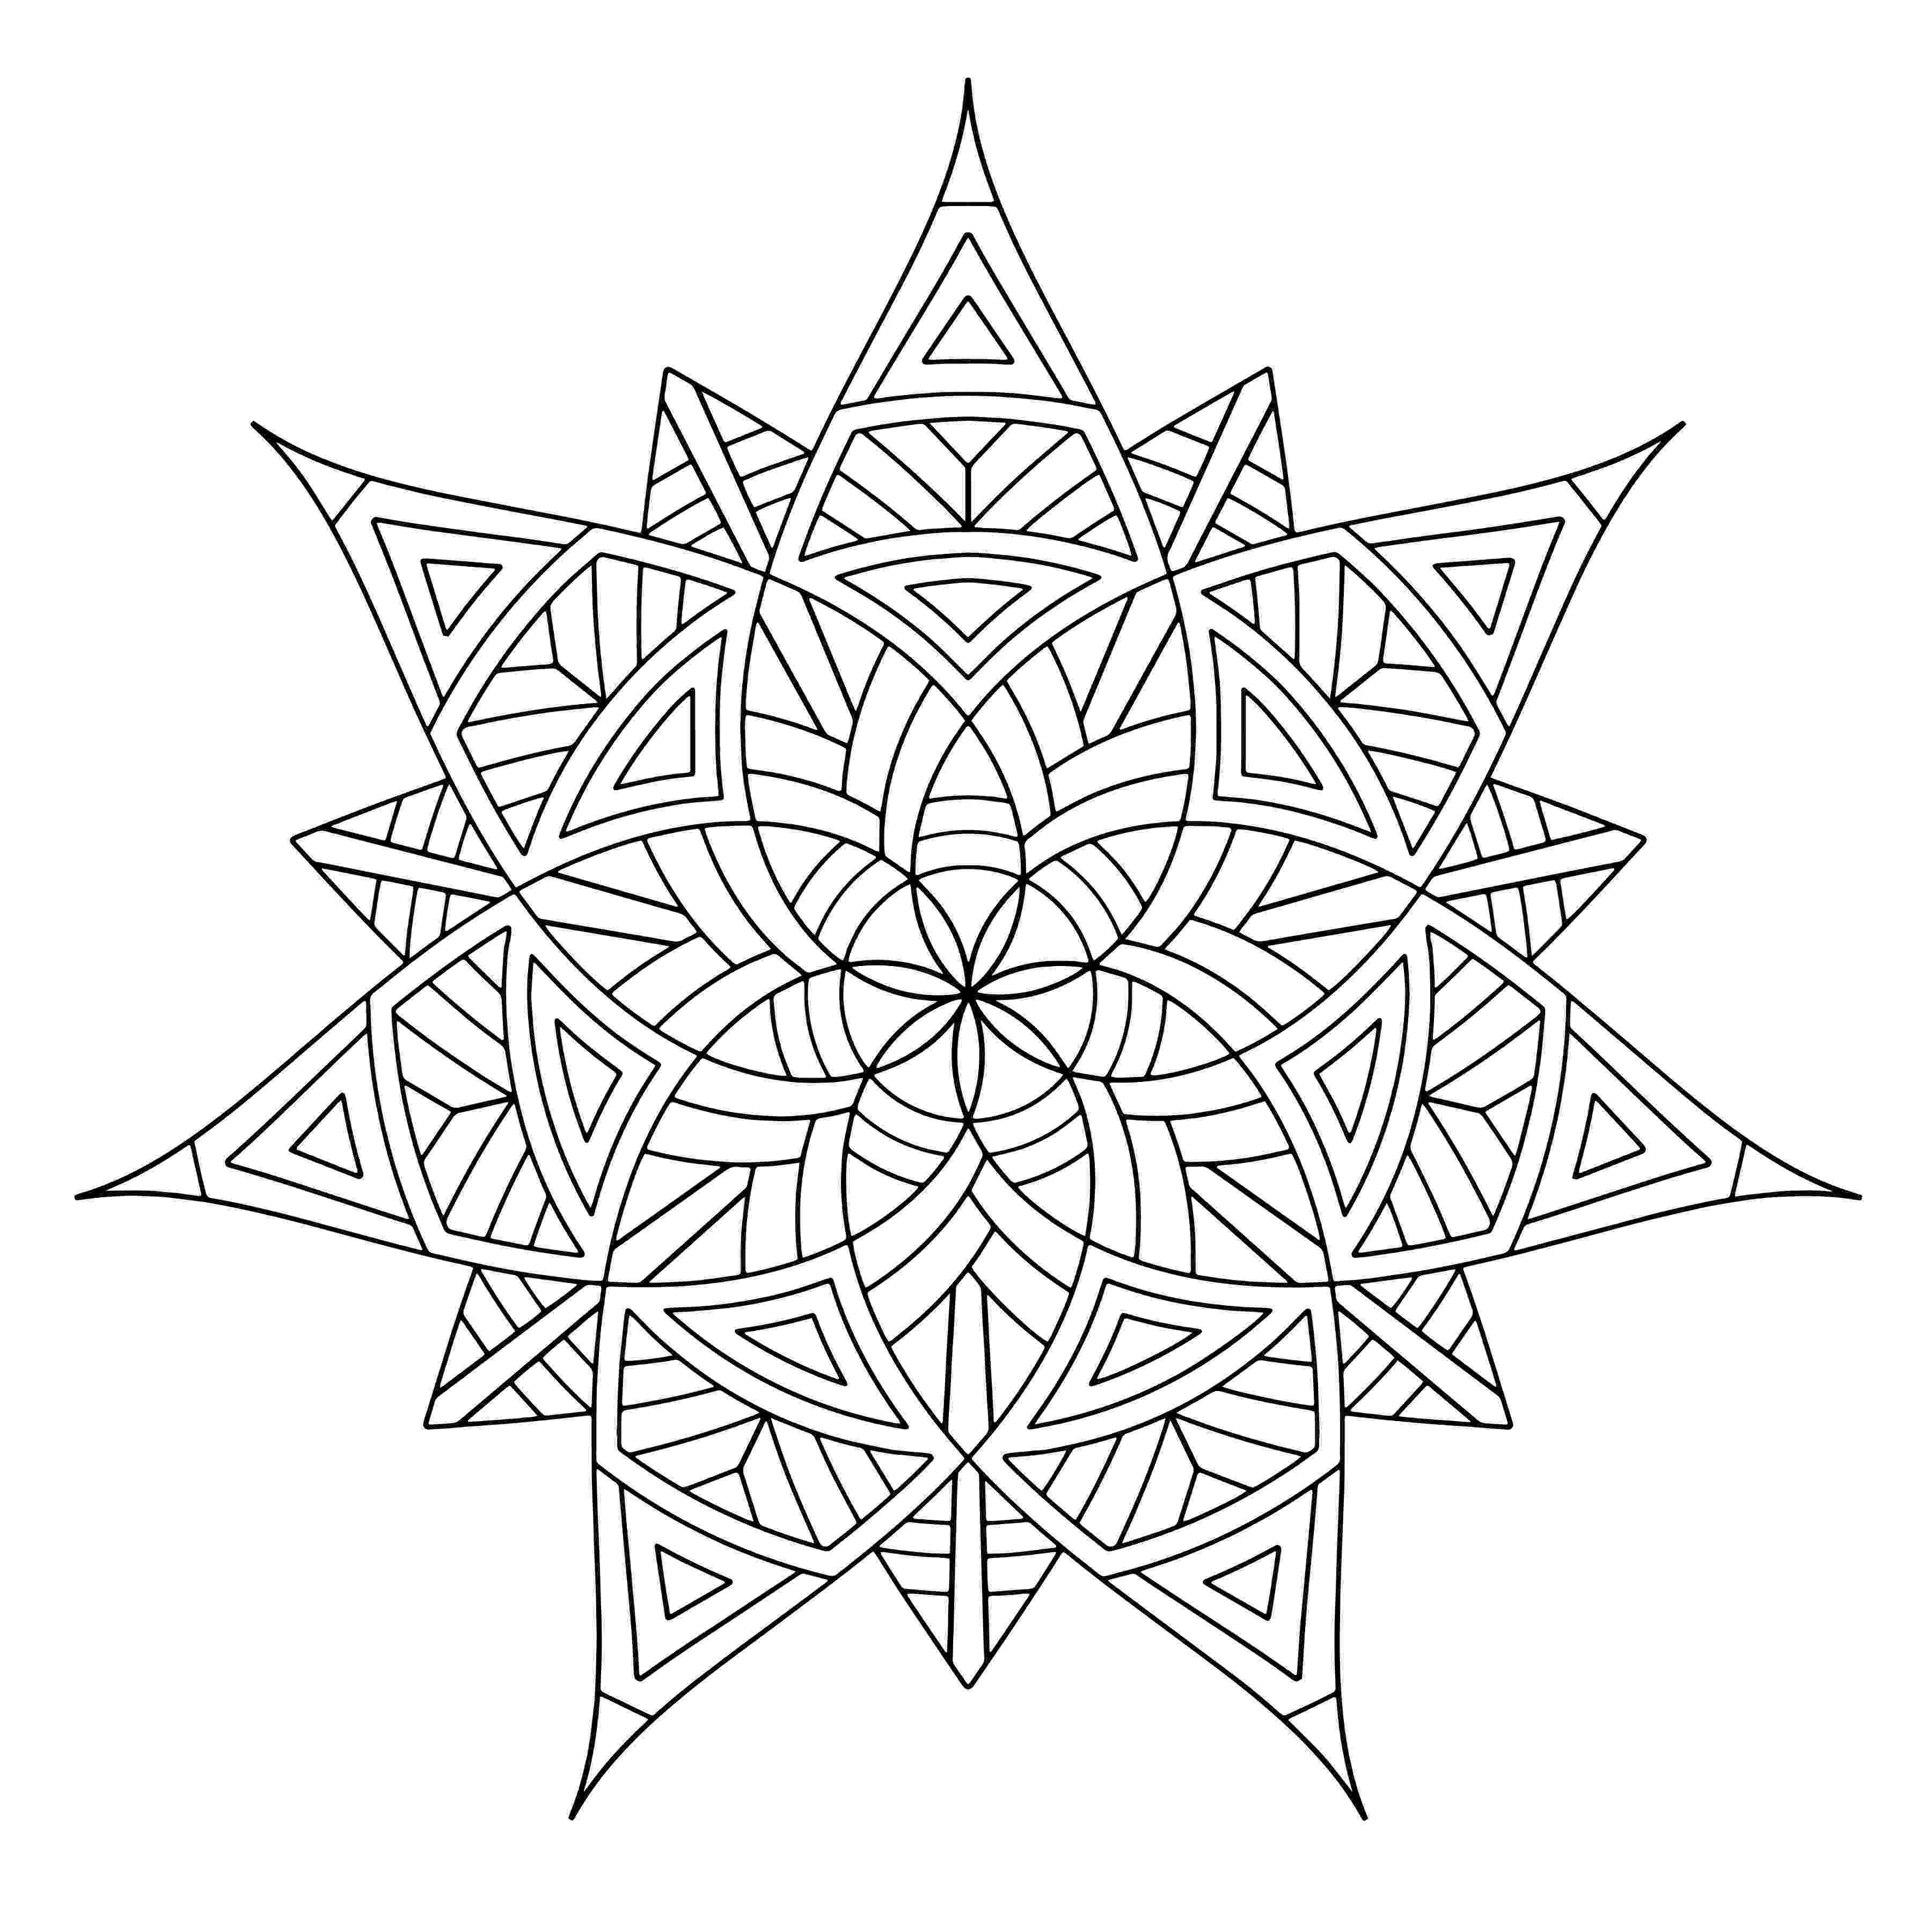 colouring pattern free printable geometric coloring pages for kids colouring pattern 1 2